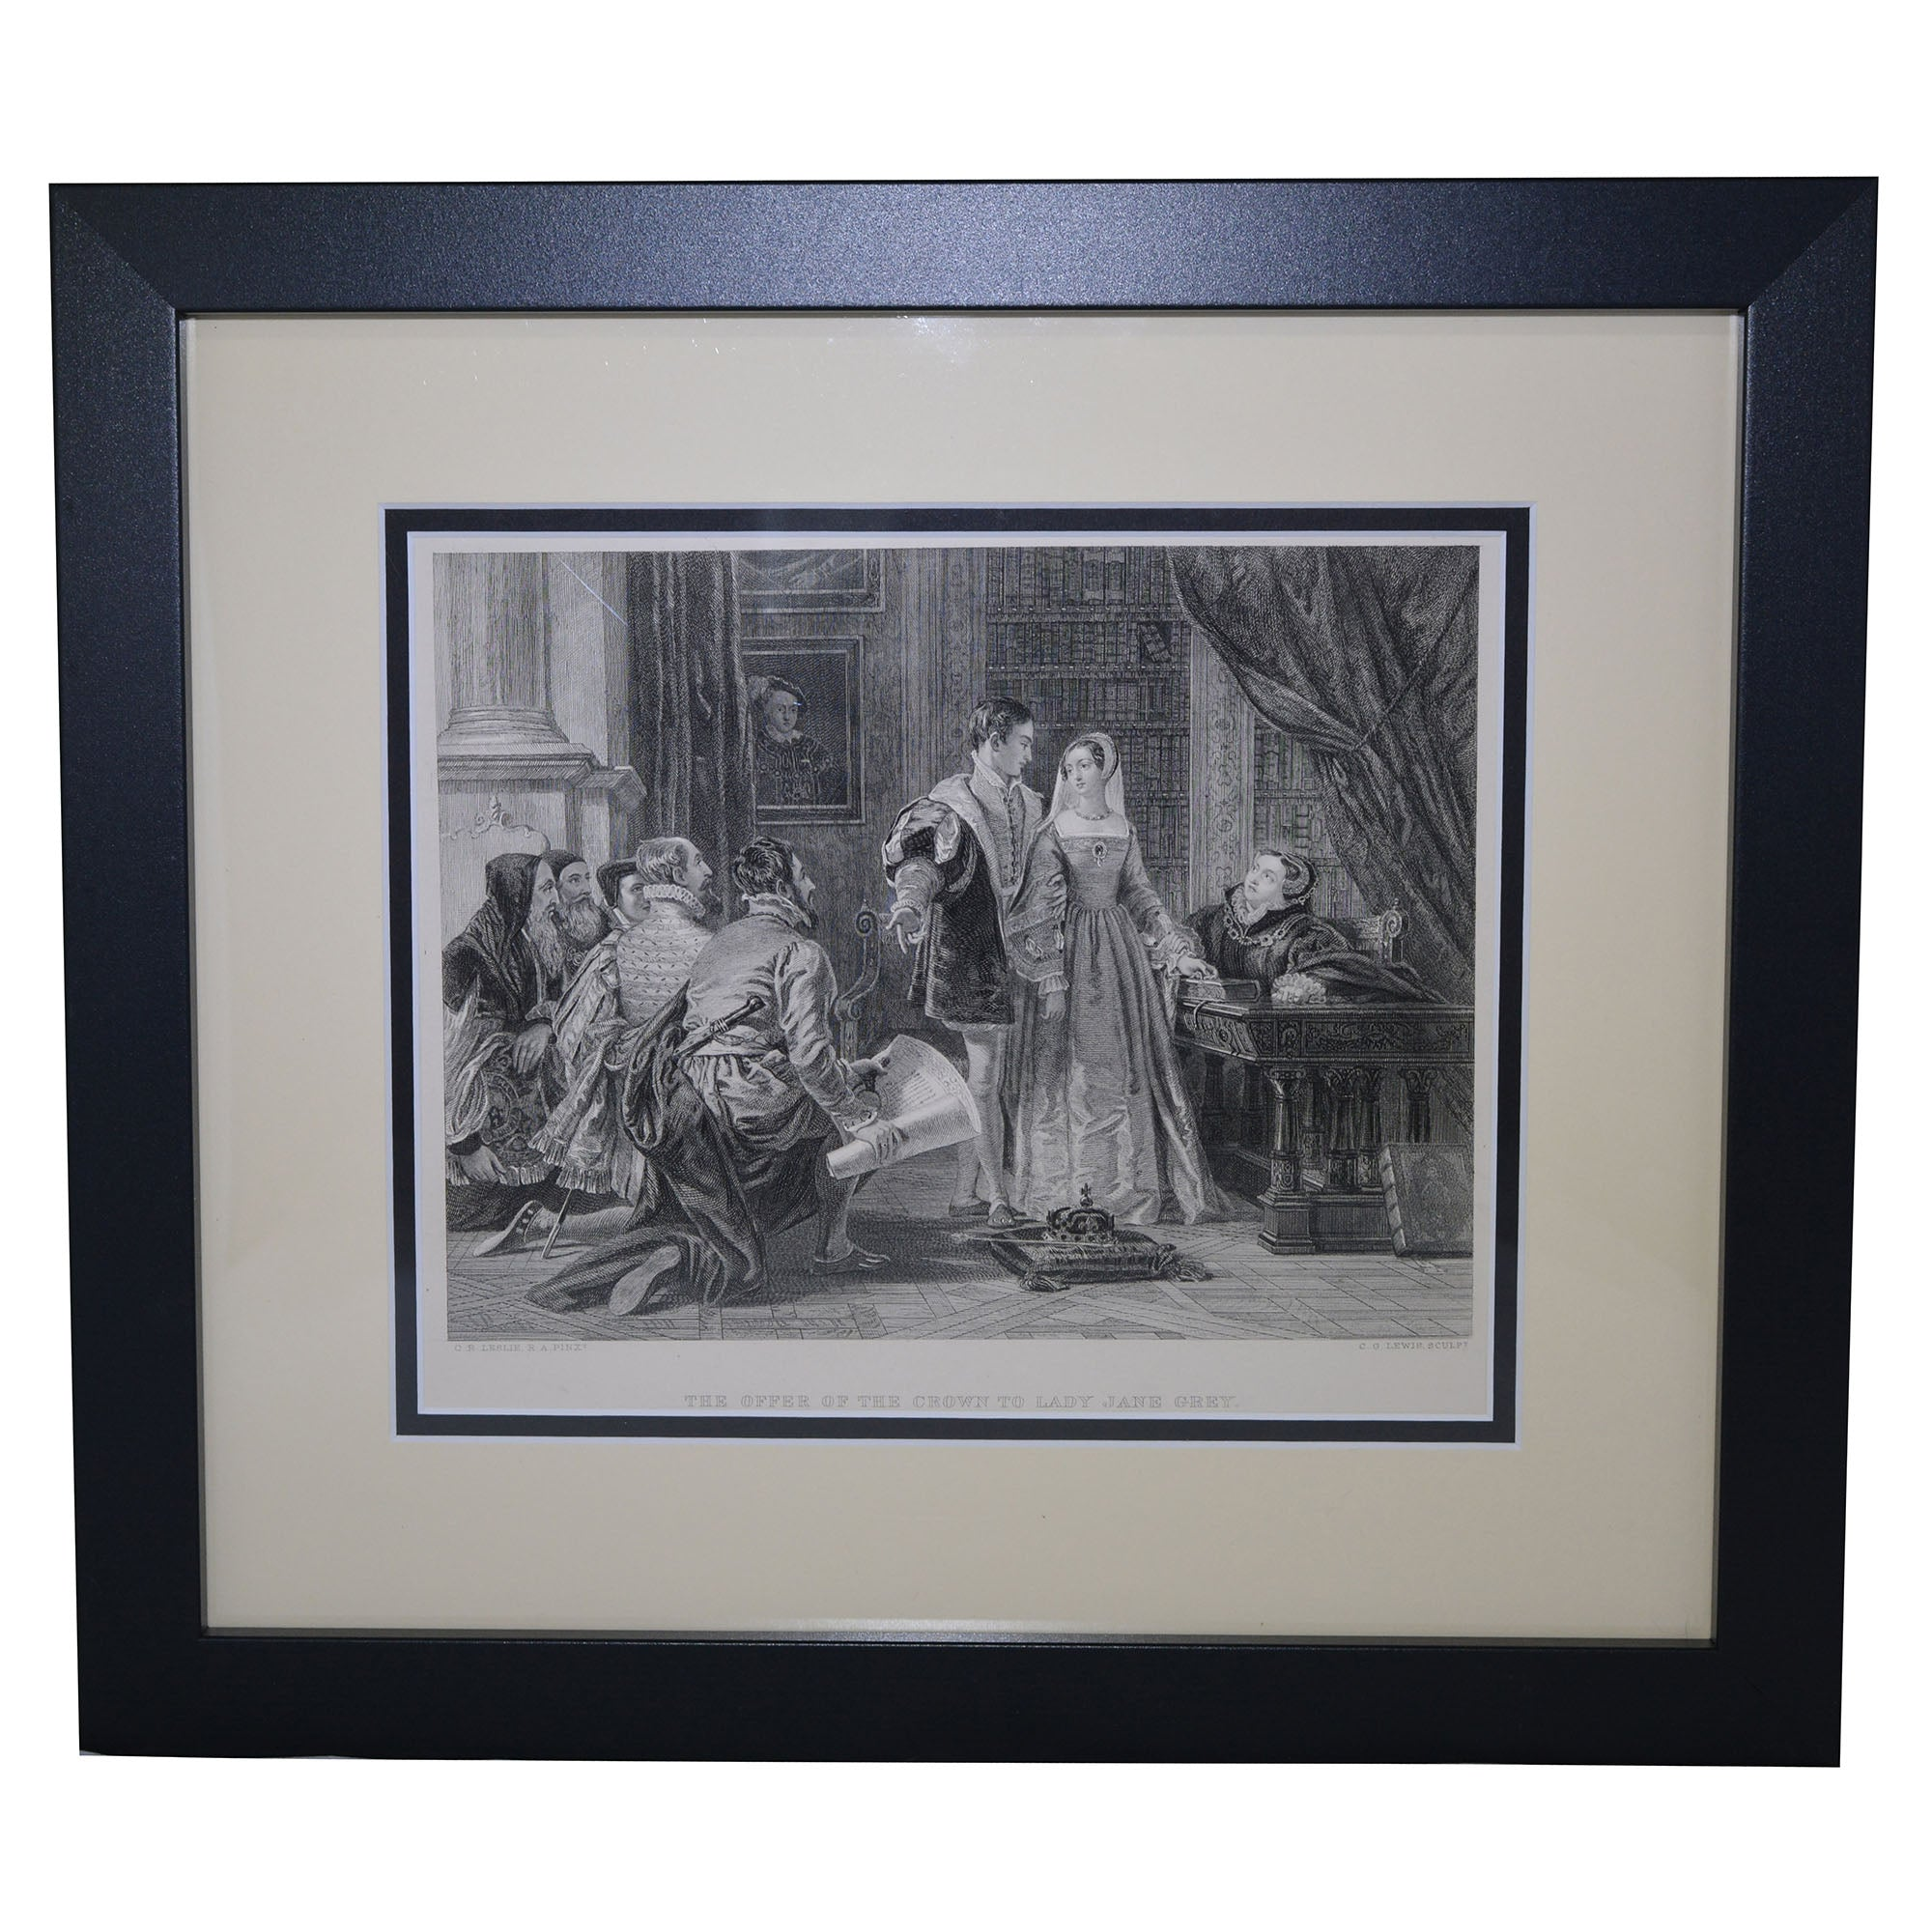 Antique Print - The Offer of the Crown to Lady Jane Grey